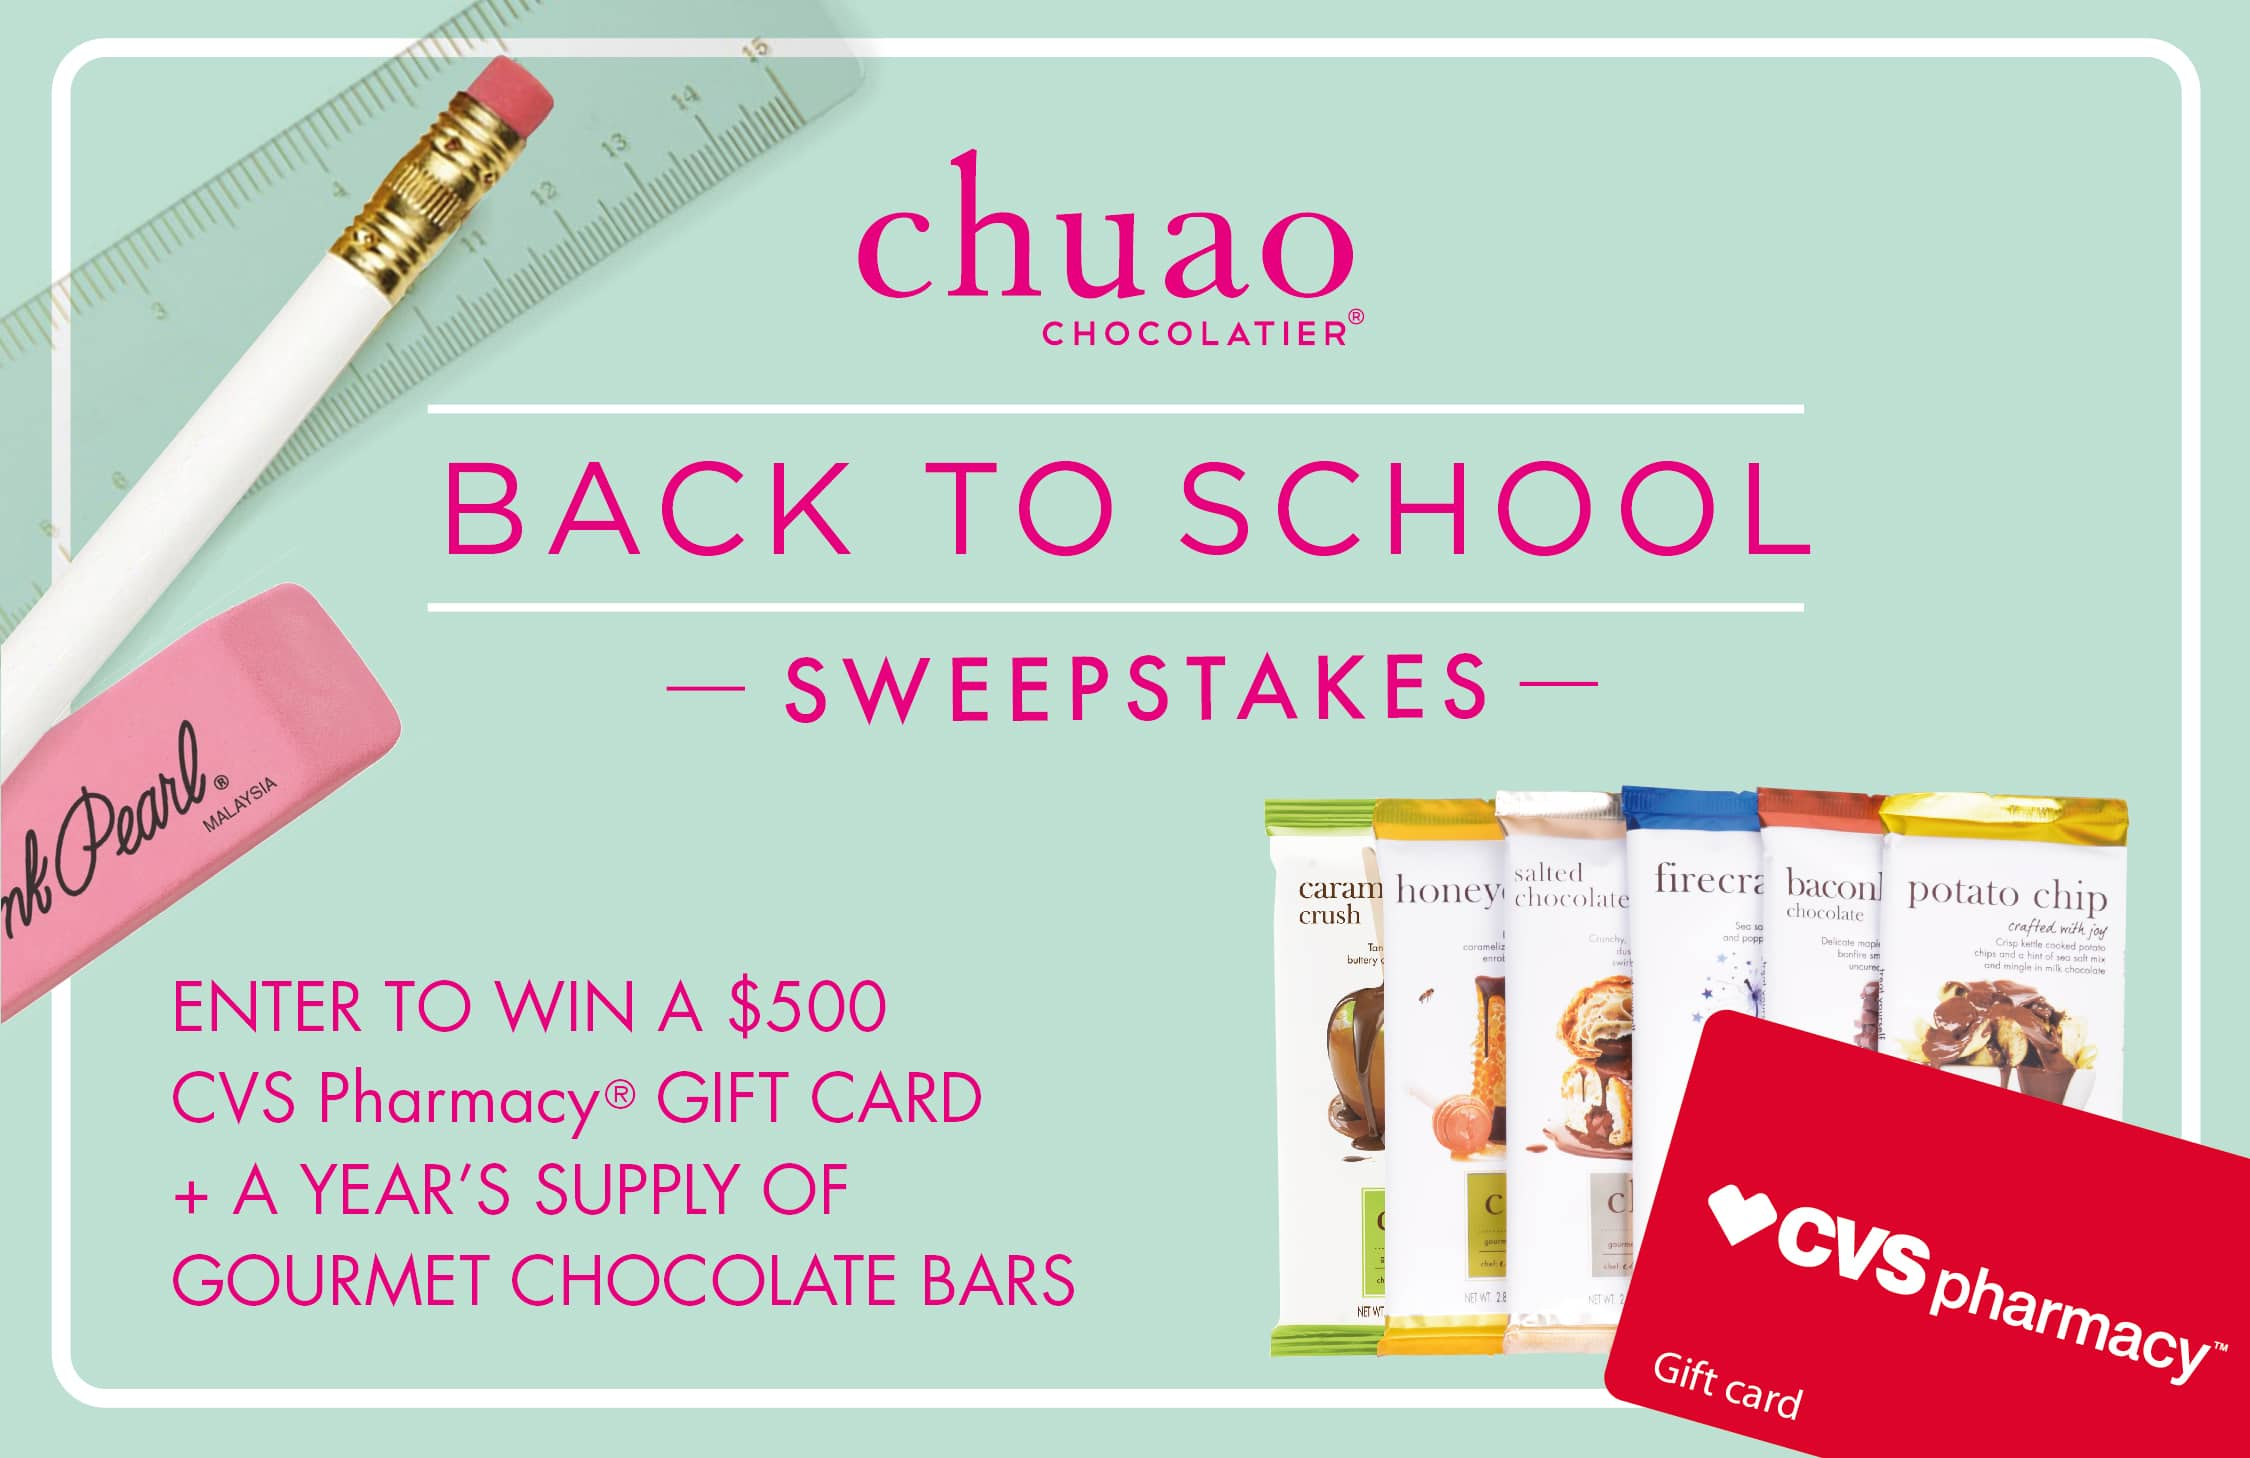 back-to-school-sweepstakes-logo-cvs-540px-x-350px-01